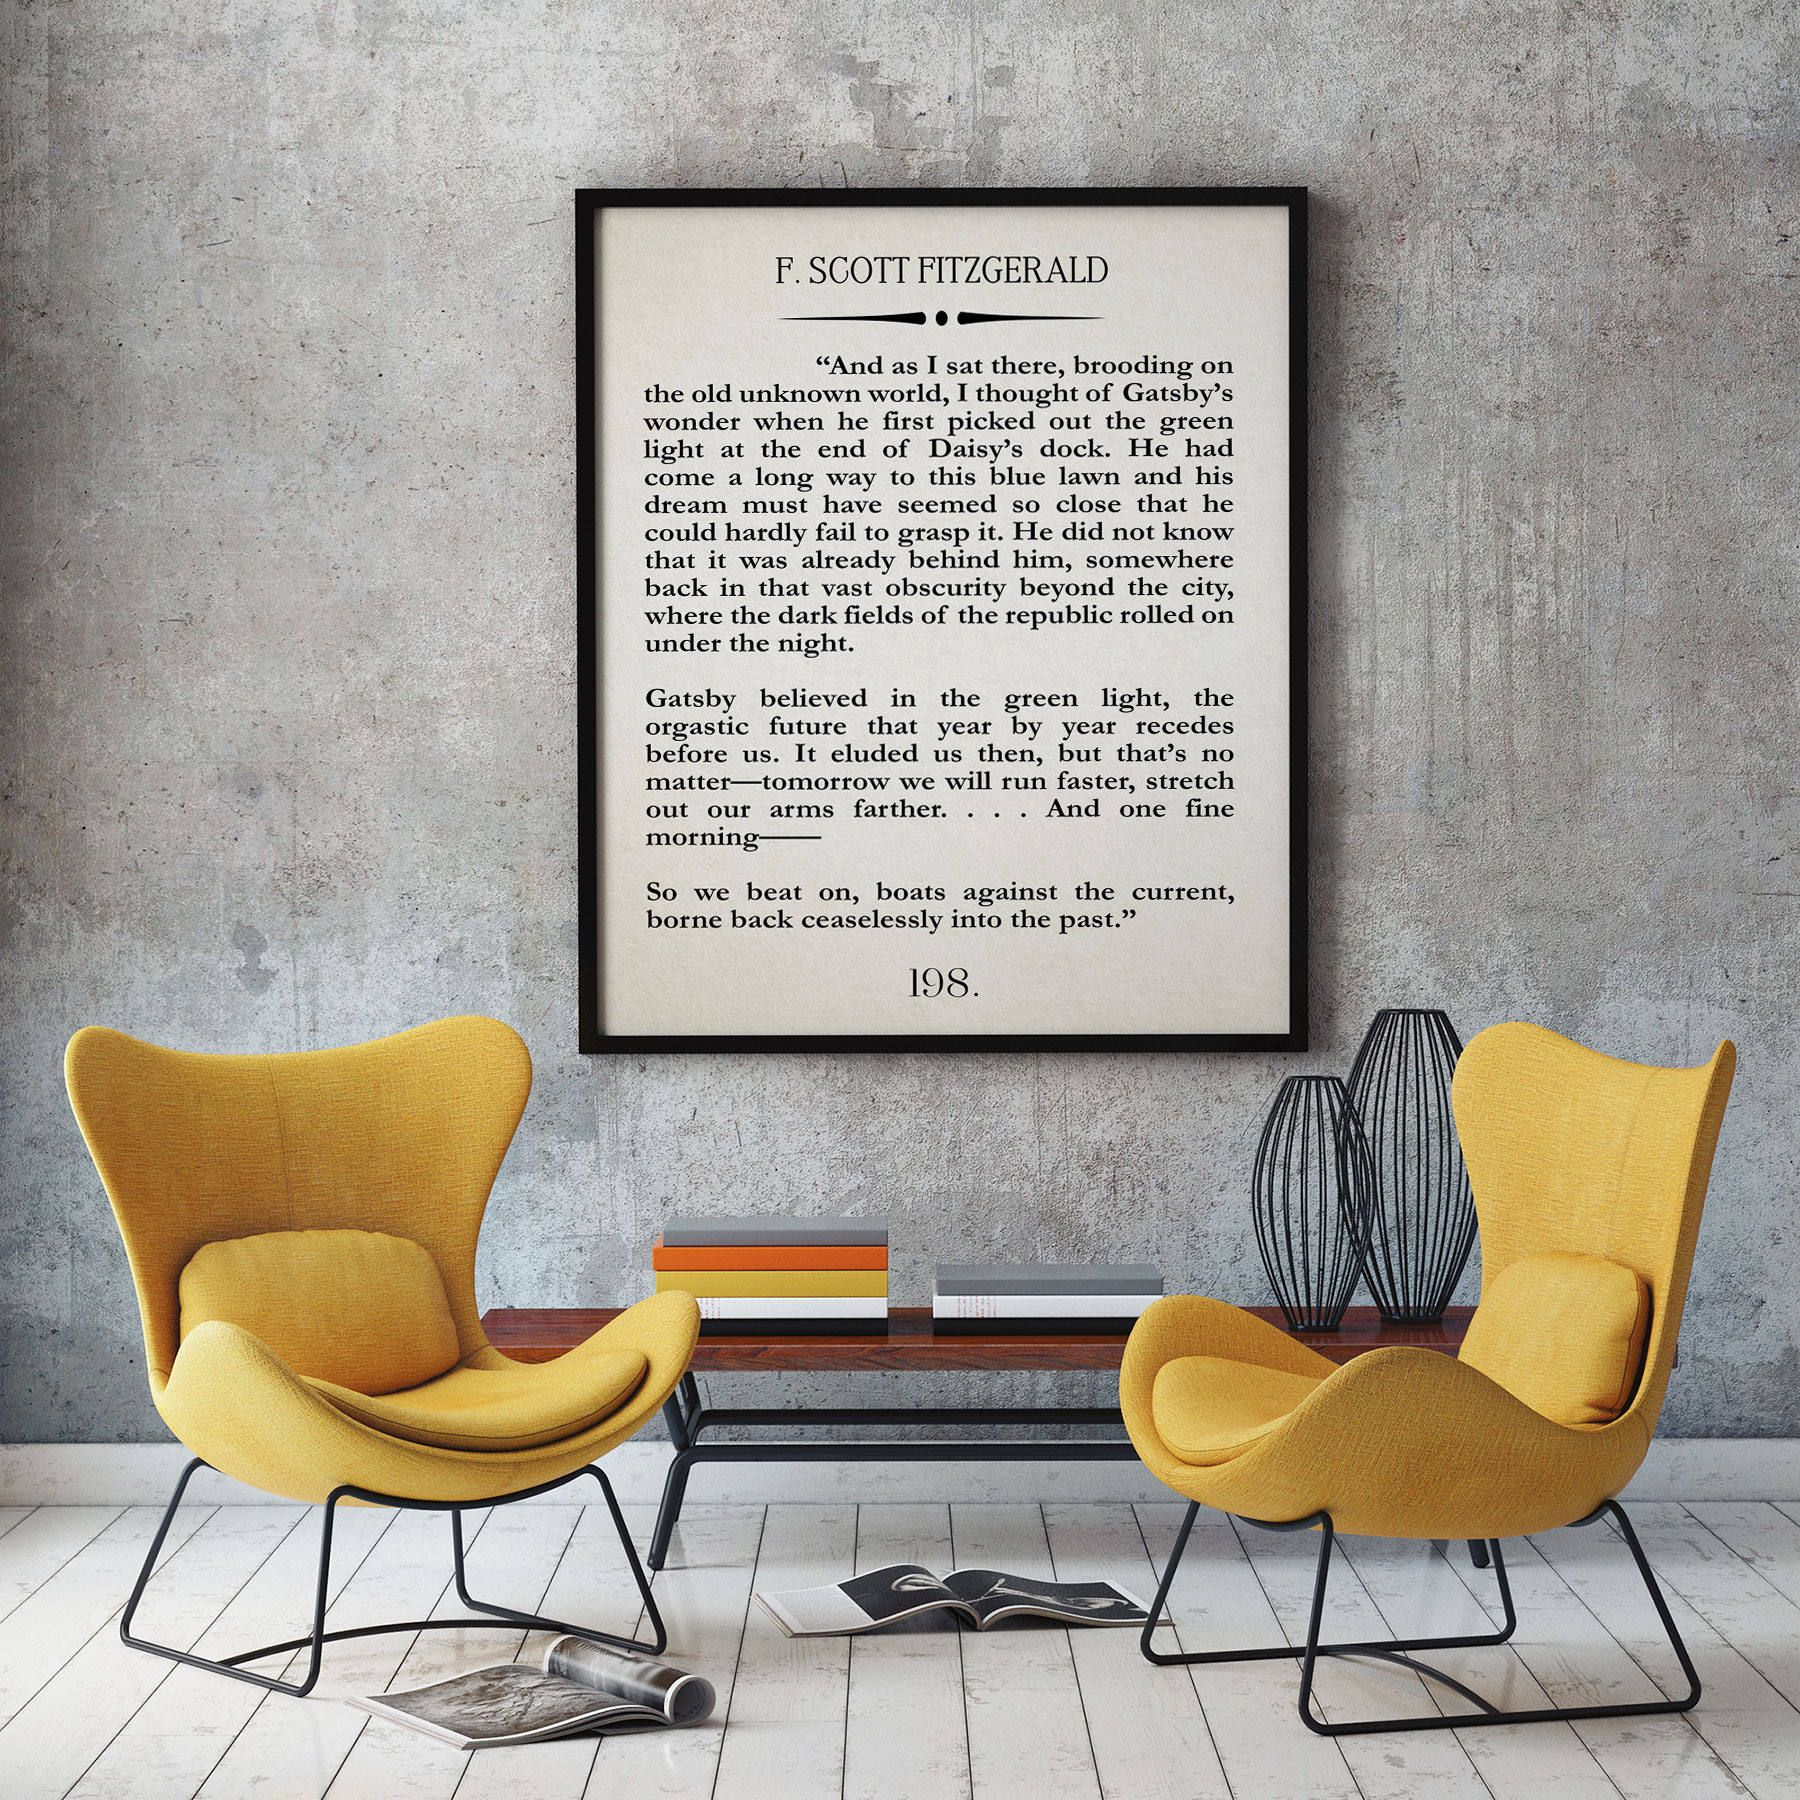 The Great Gatsby Last Page Quote Print Gatsby Wall Art Gatsby Poster Gatsby Quotation Great Gatsby Decor F Scott Fitzgerald Quote Gatsby Art Prints Vintage Images Poster Prints